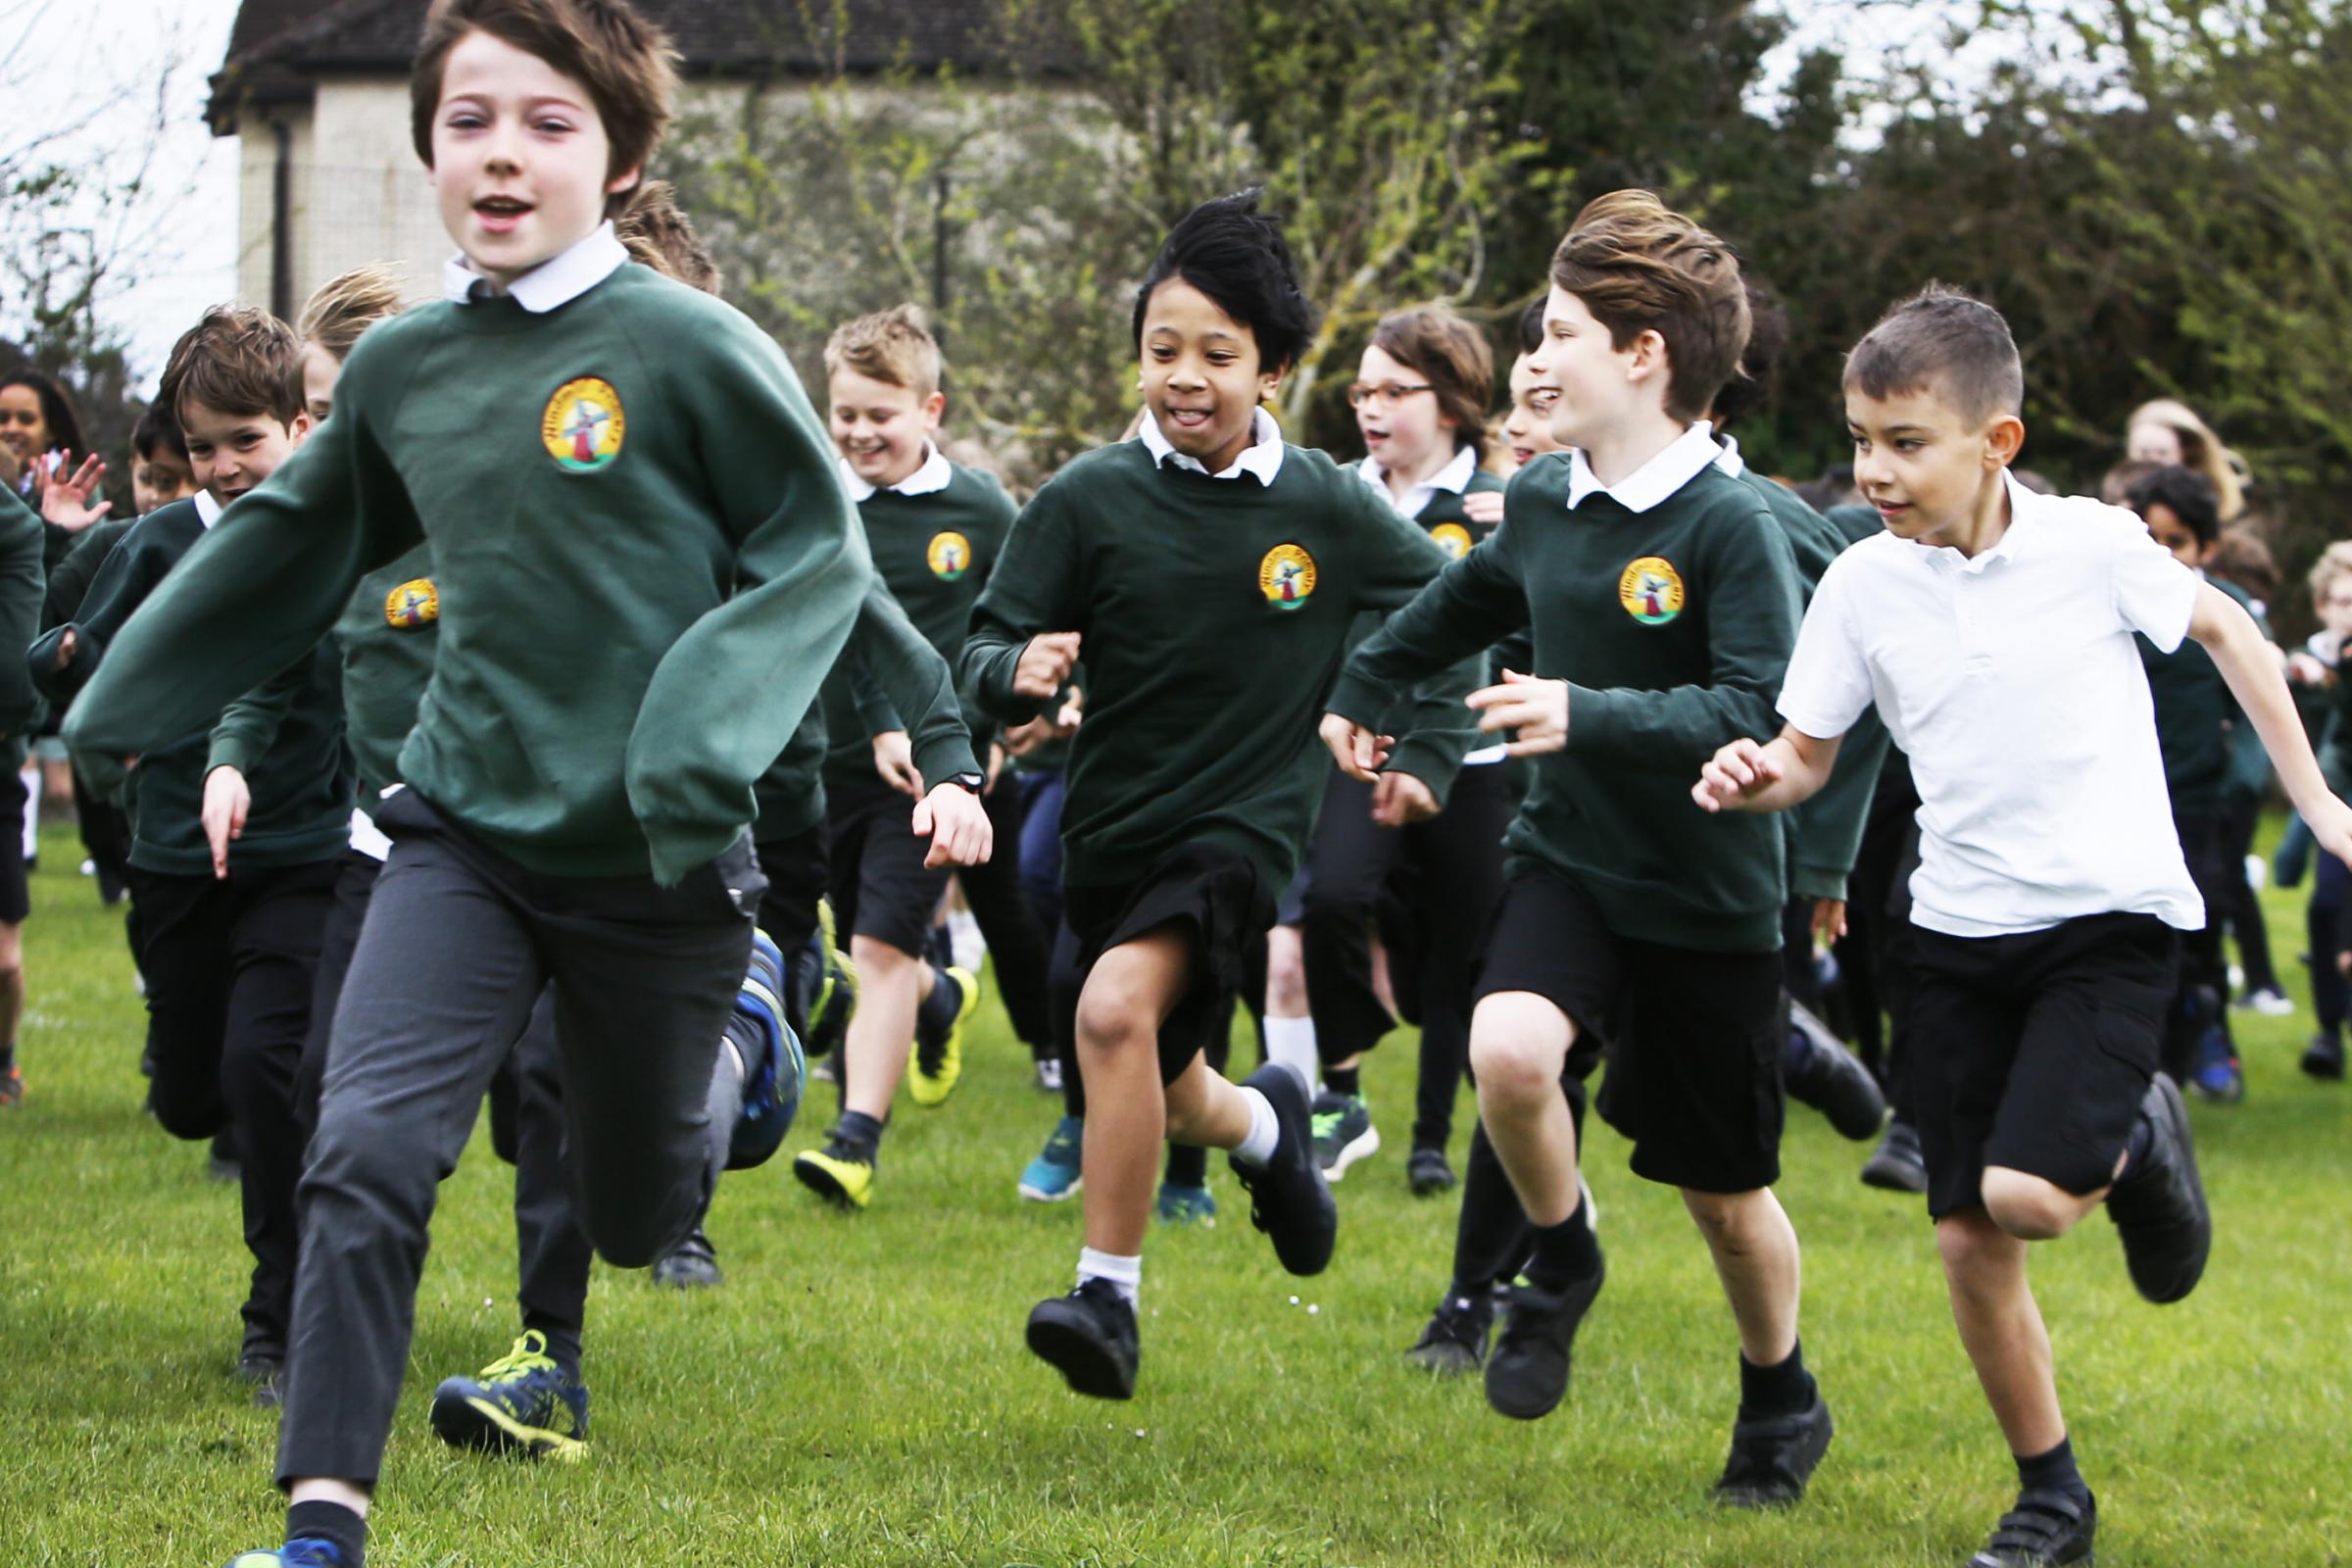 The Windmill Primary School take part in the national ' Daily Mile' where kids are encouraged to run a mile before they start their school day.